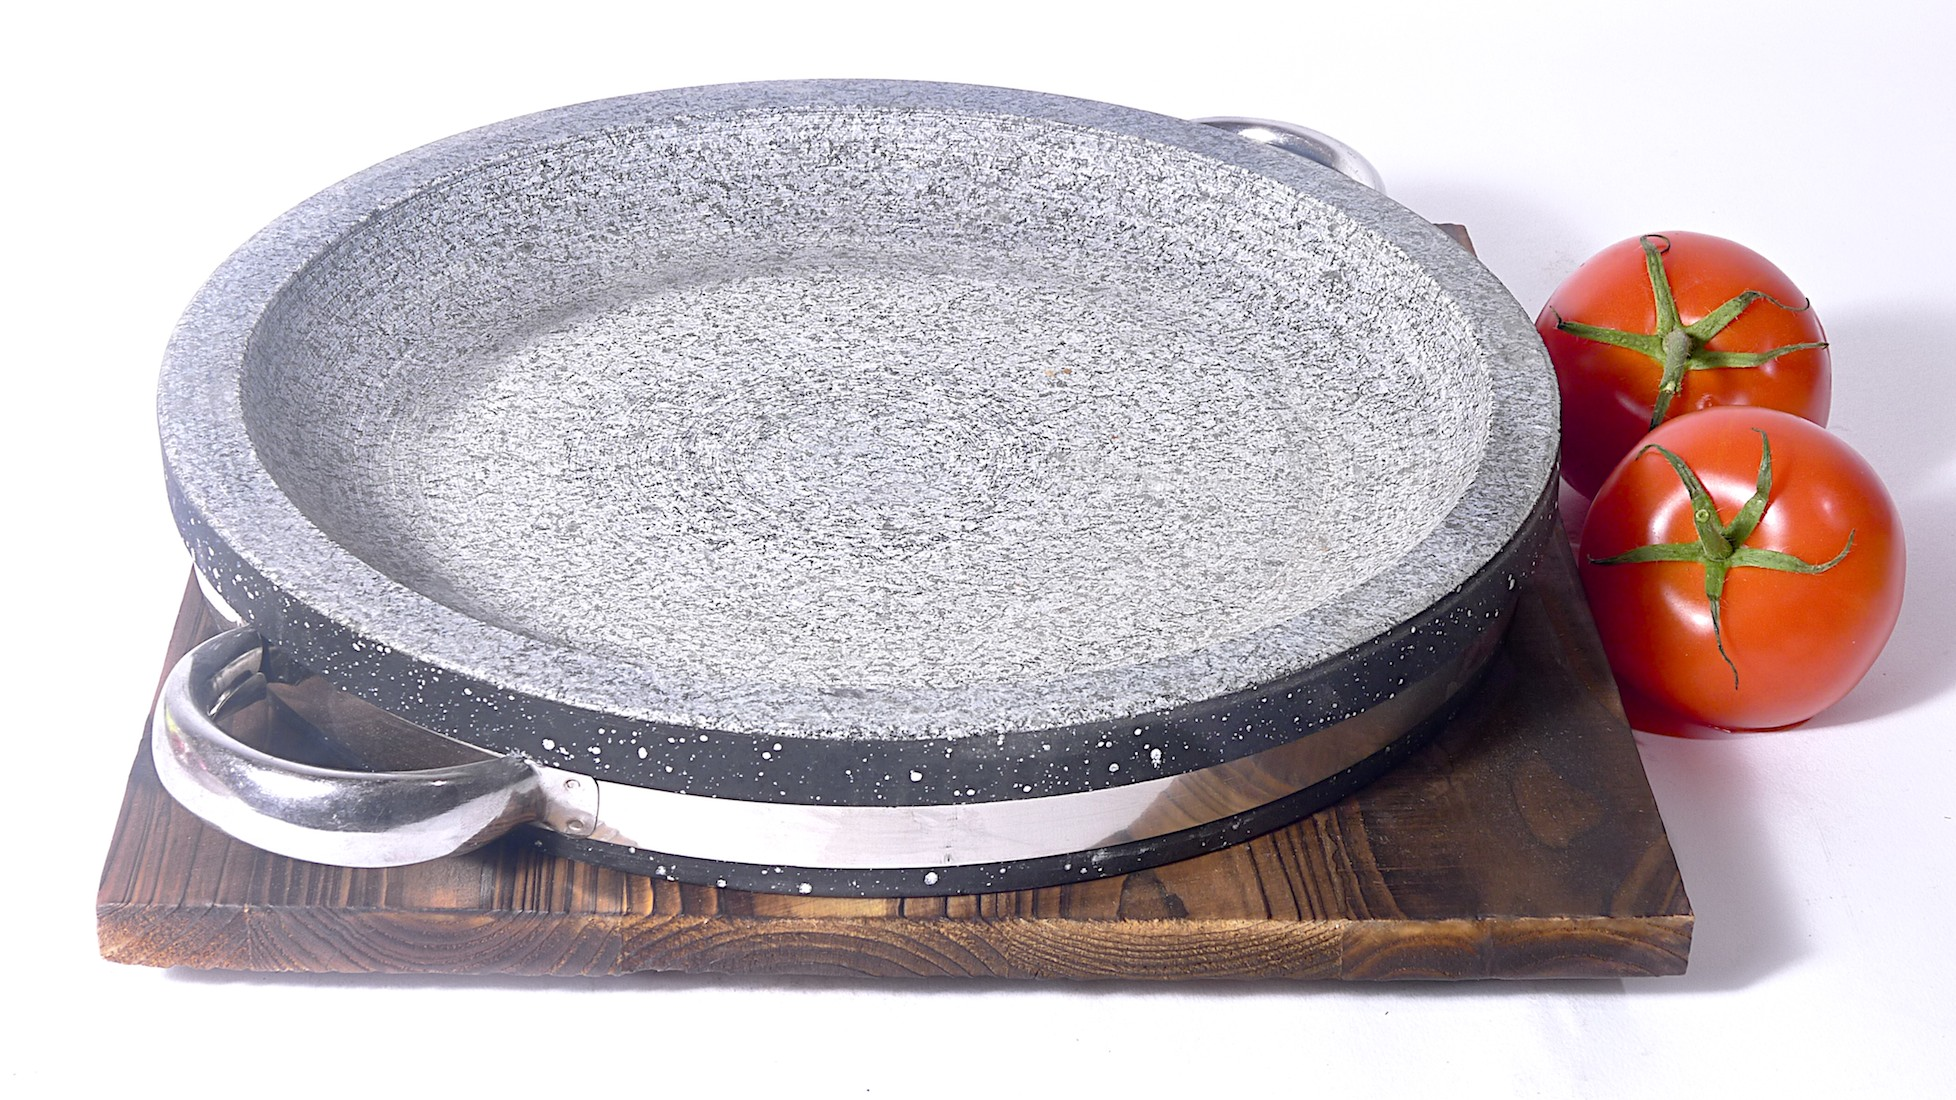 Image of 11-Inch Stone Grilling and Searing Dish